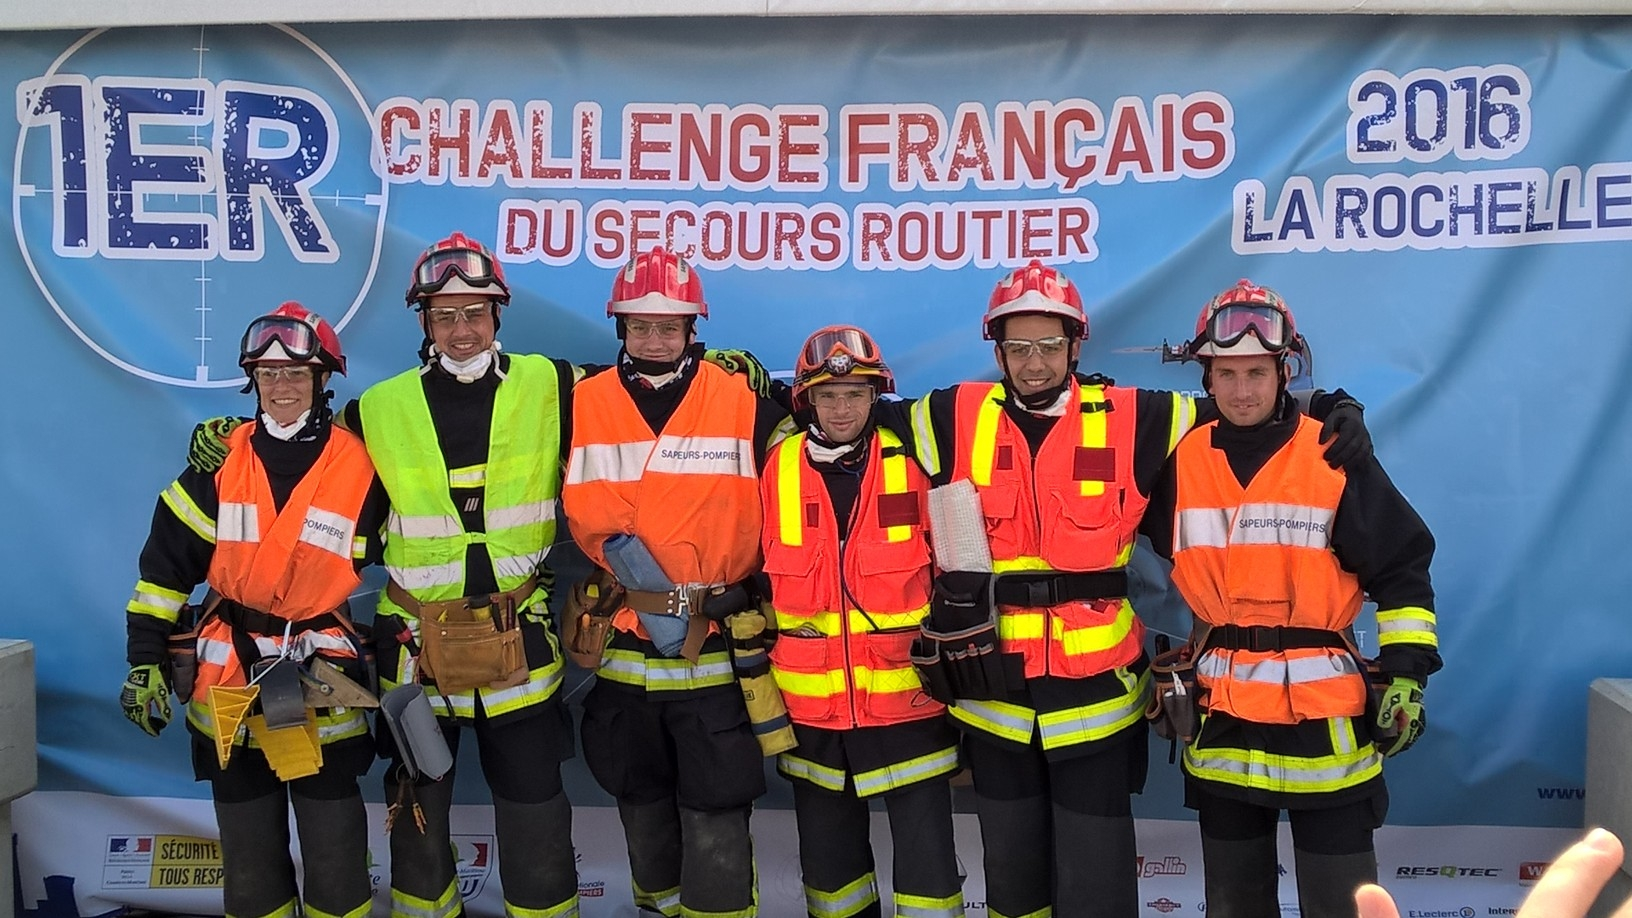 Challenge national de secours routier 2016